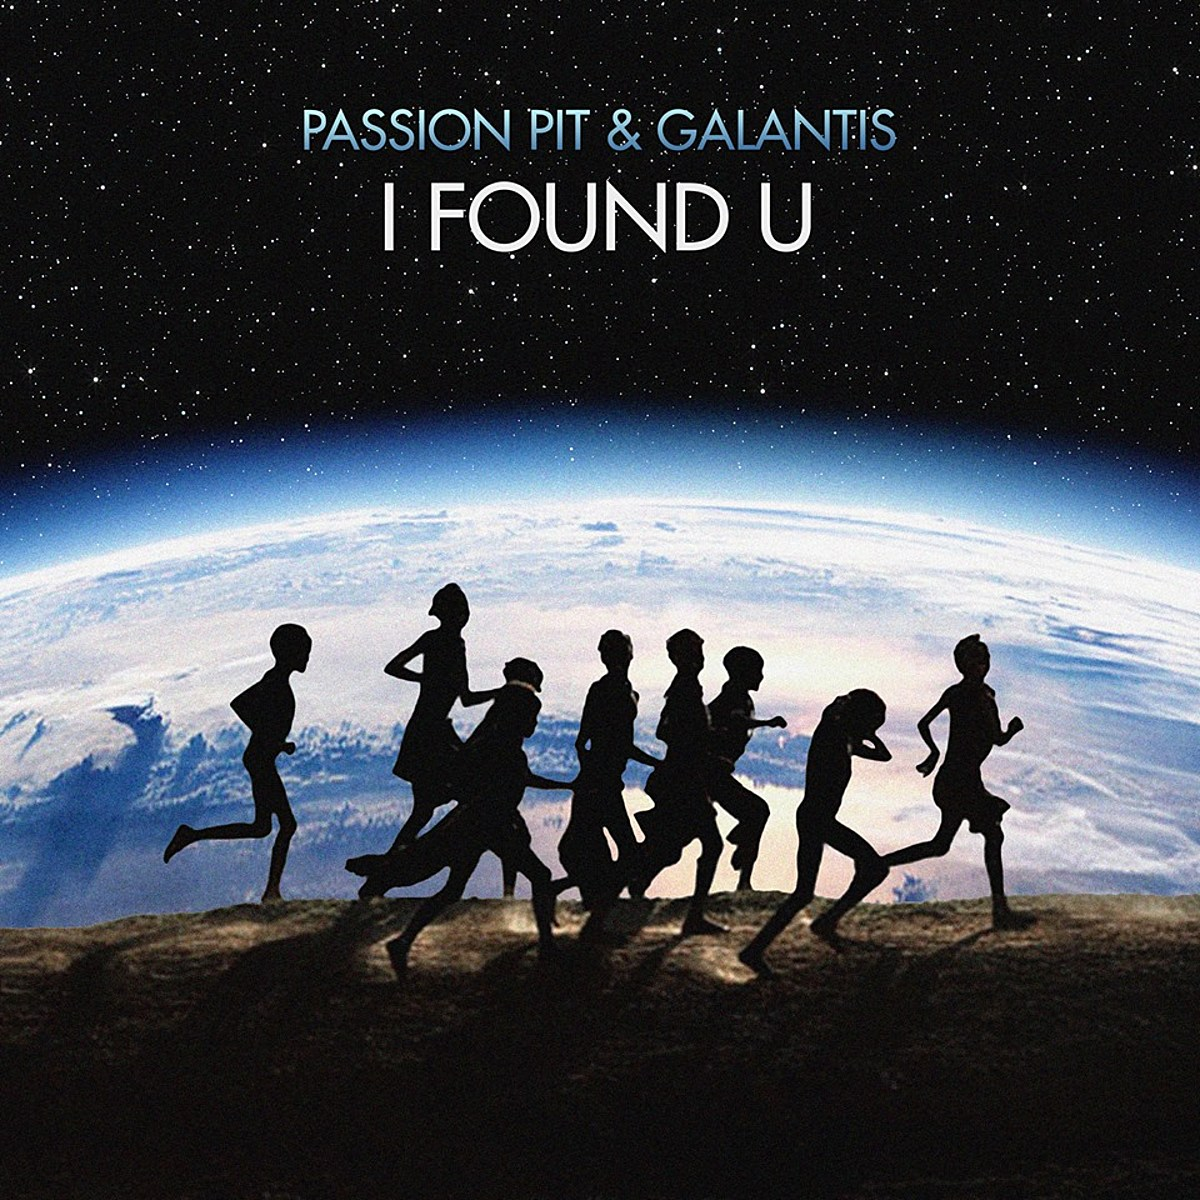 """Passion Pit share new song """"I Found U"""" with Galantis (listen)"""